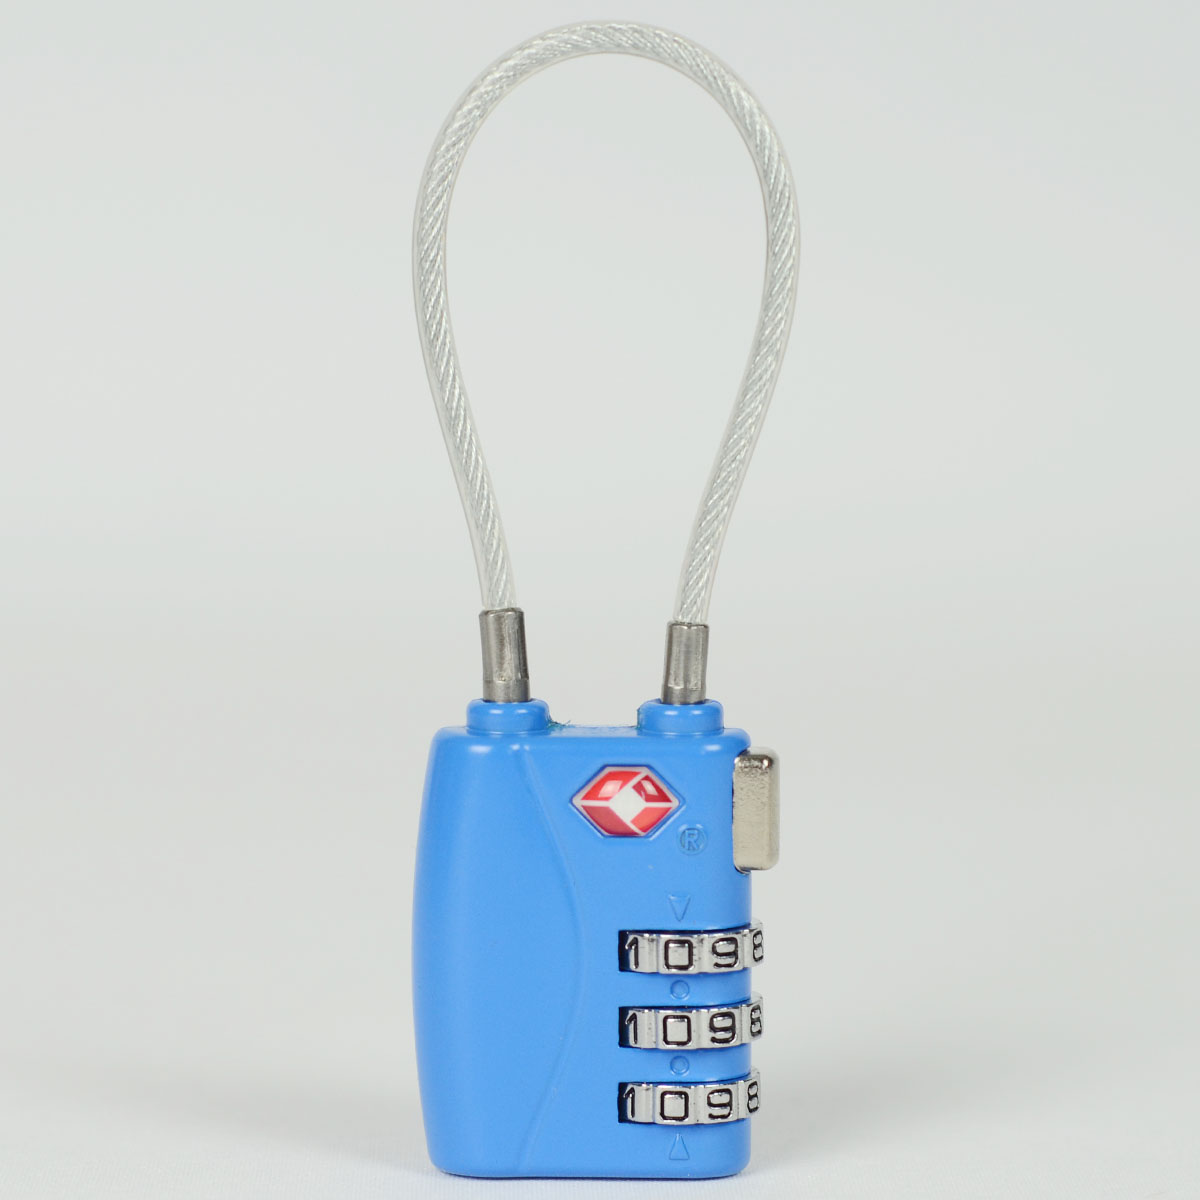 TSA719 travel luggage locks customs clearance locks luggage lock luggage lock